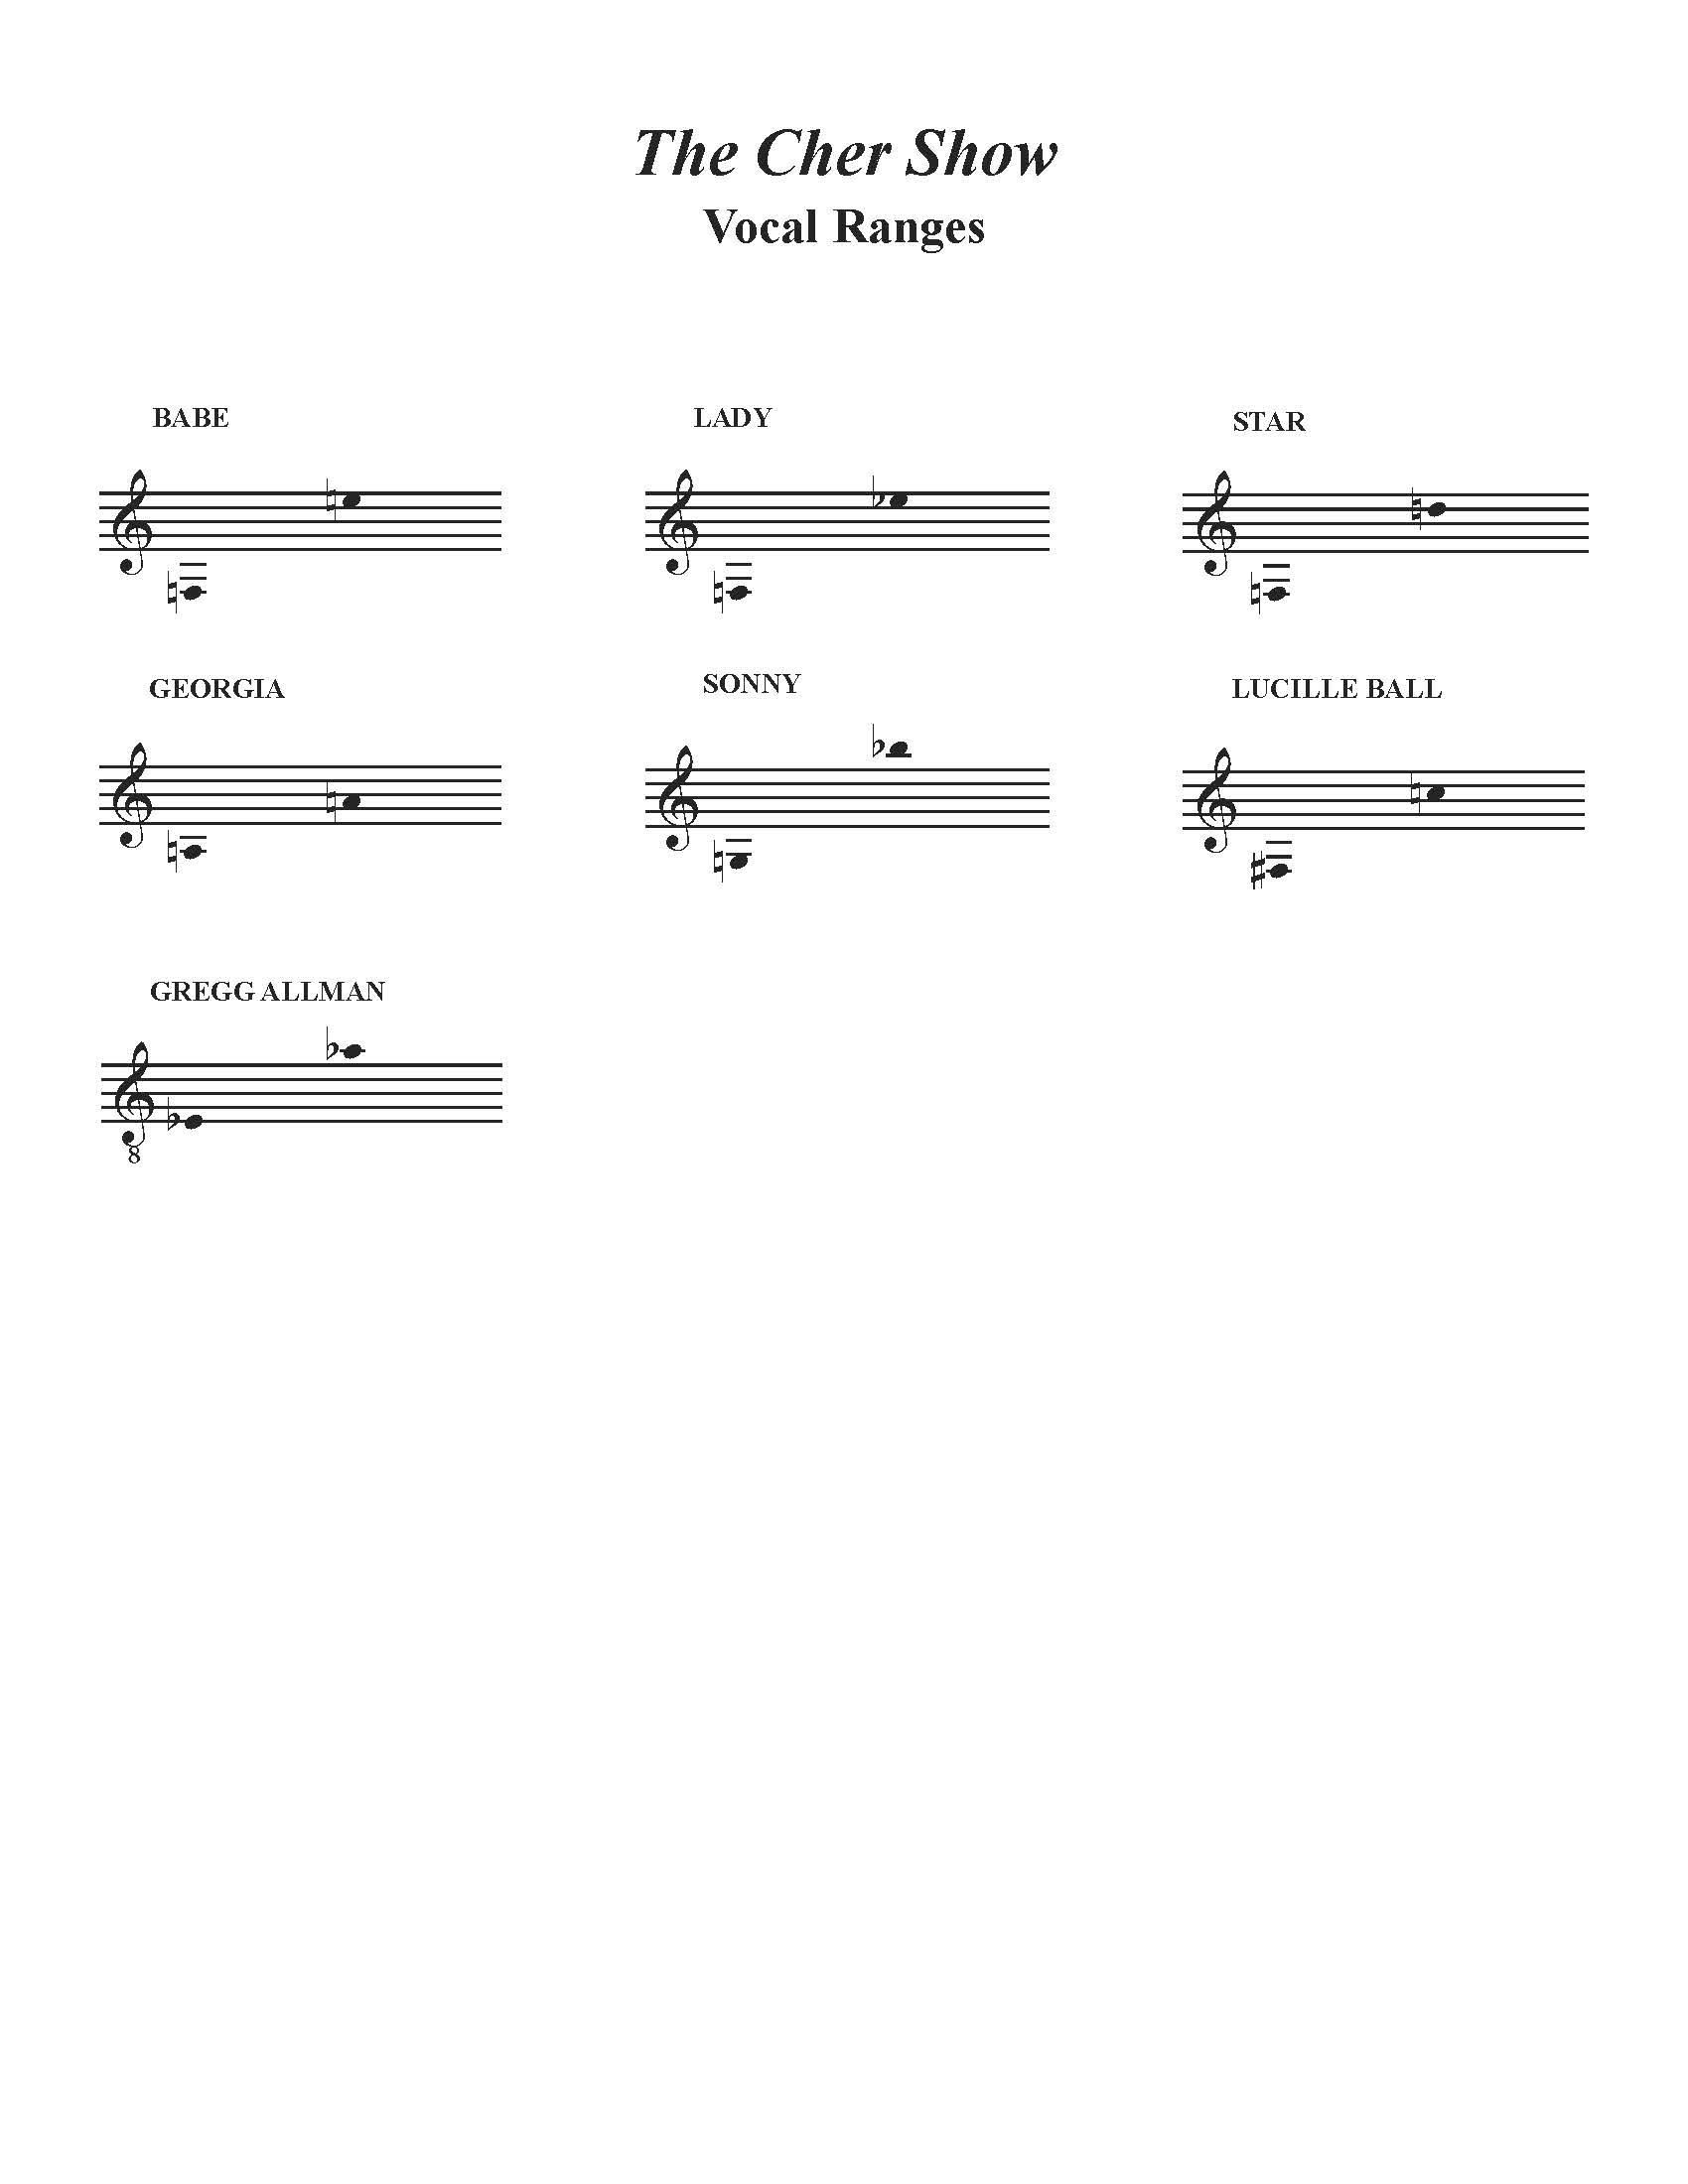 The Cher Show Vocal Ranges